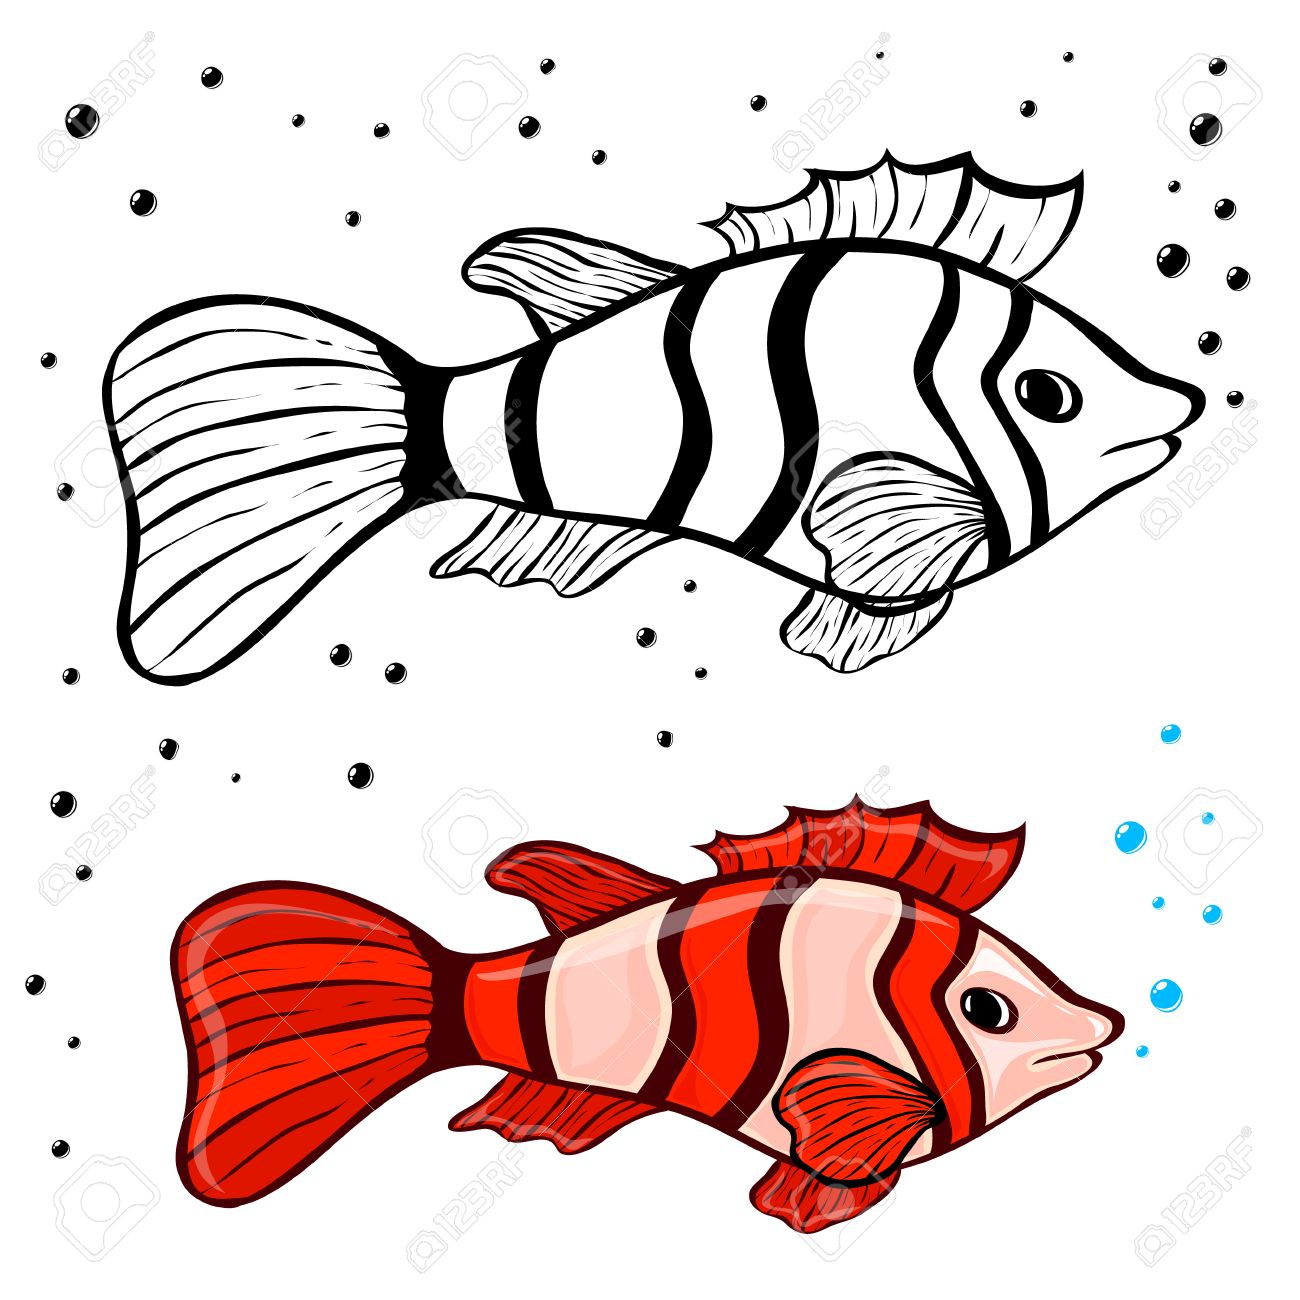 Awesome Coloring Fishes Adornment - Drawing Coloring - androidharga.info